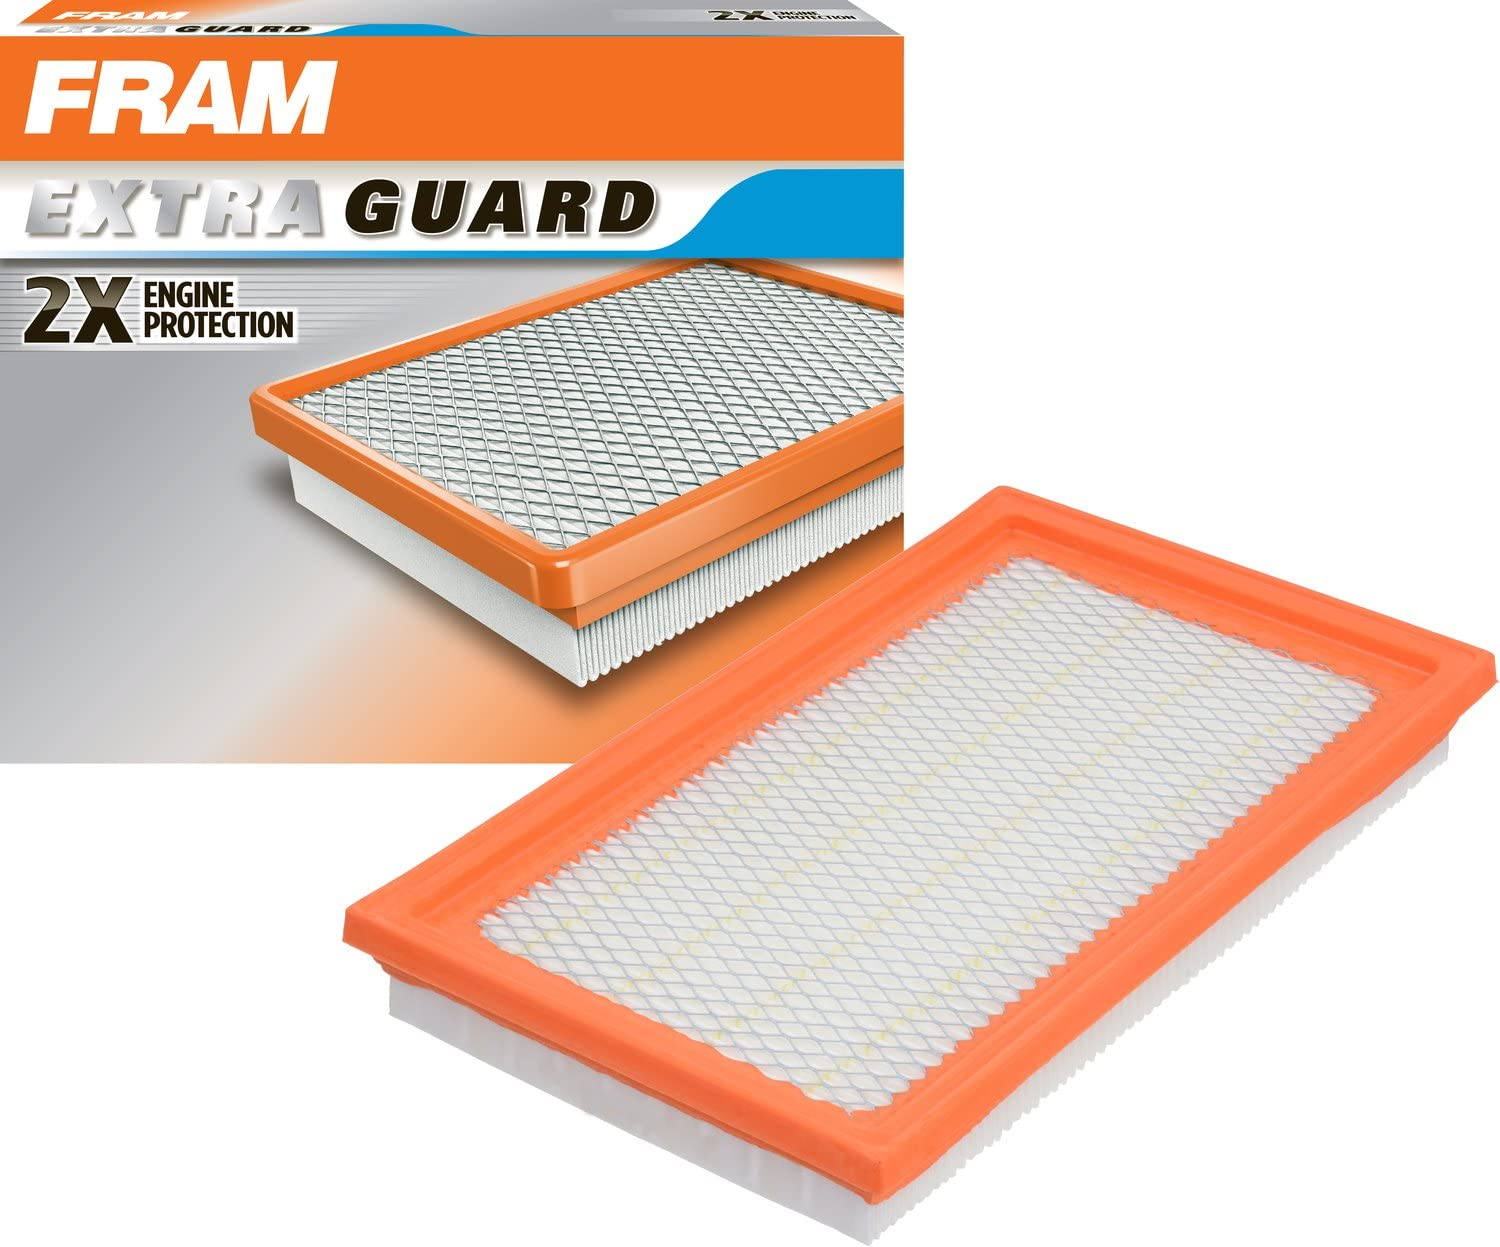 FRAM Extra Guard Air Filter, CA4309 for Select Infiniti, Nissan, Saab, and Subaru